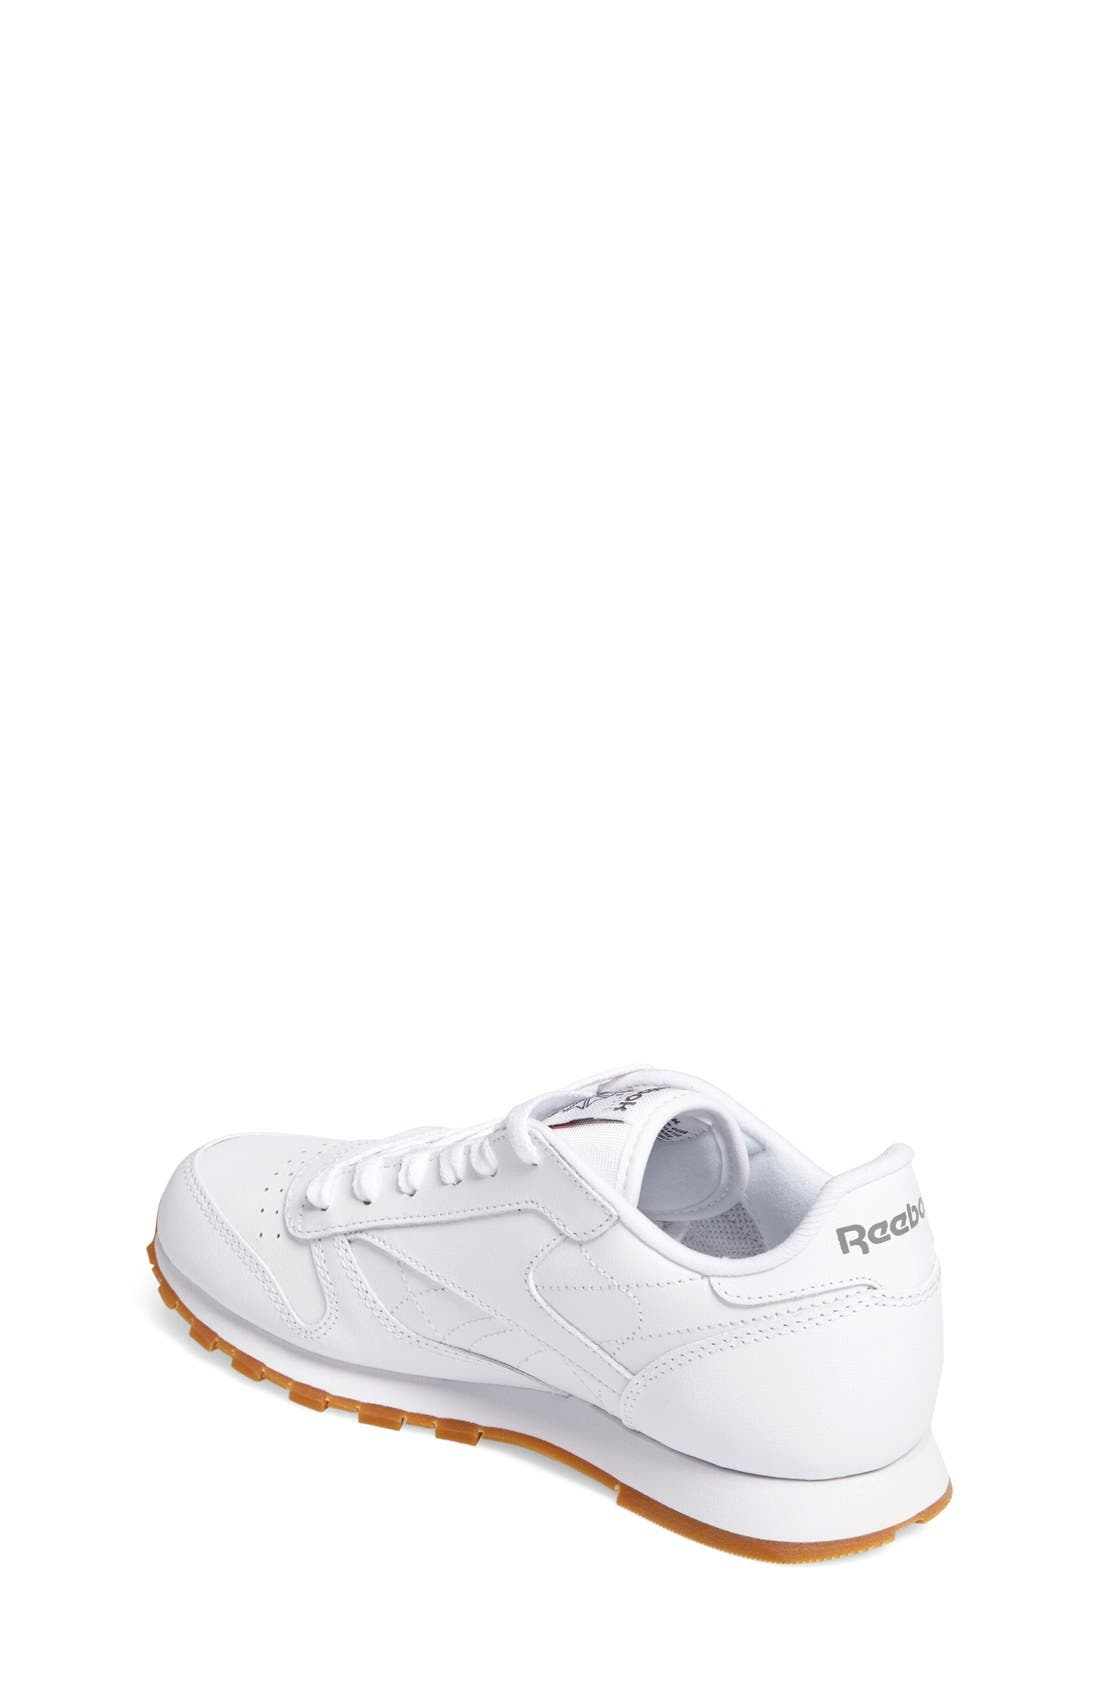 Classic Leather Sneaker,                             Alternate thumbnail 2, color,                             White